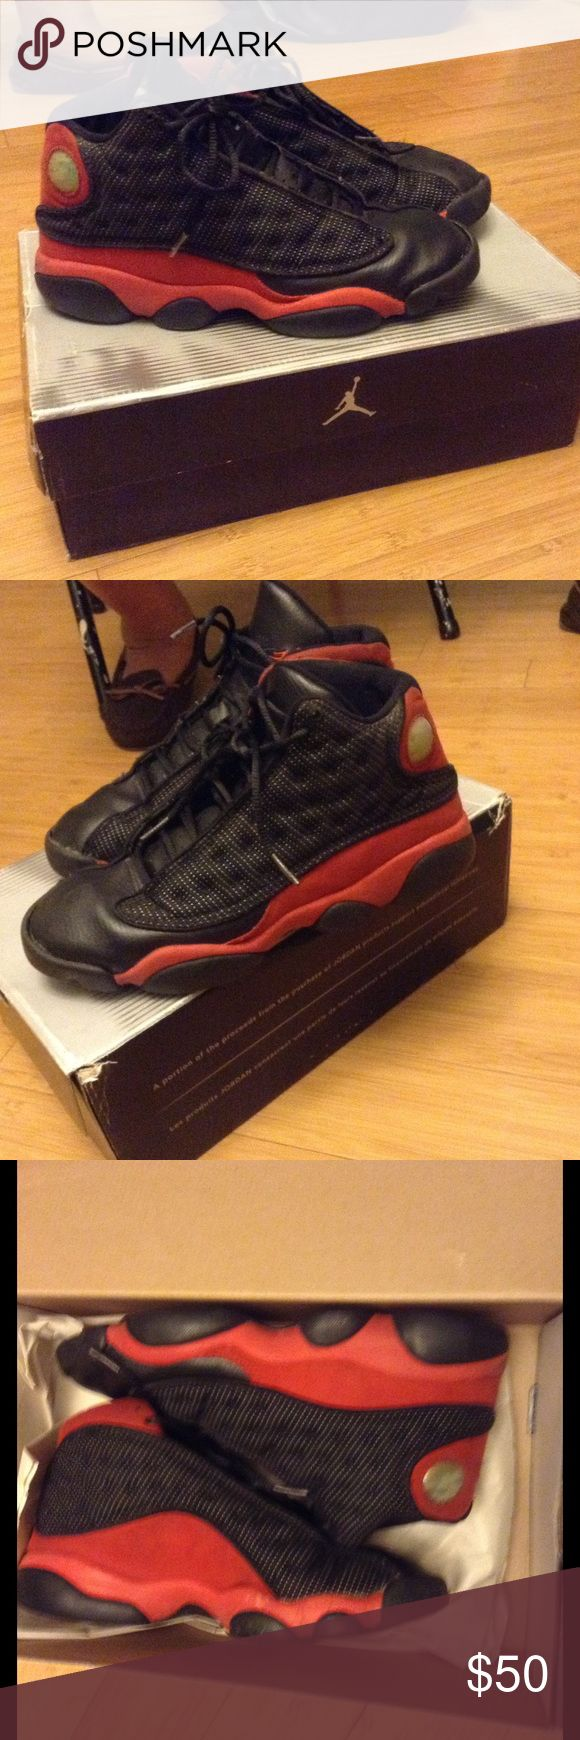 Jordan Retro 13 All damage displayed Jordan Shoes Sneakers